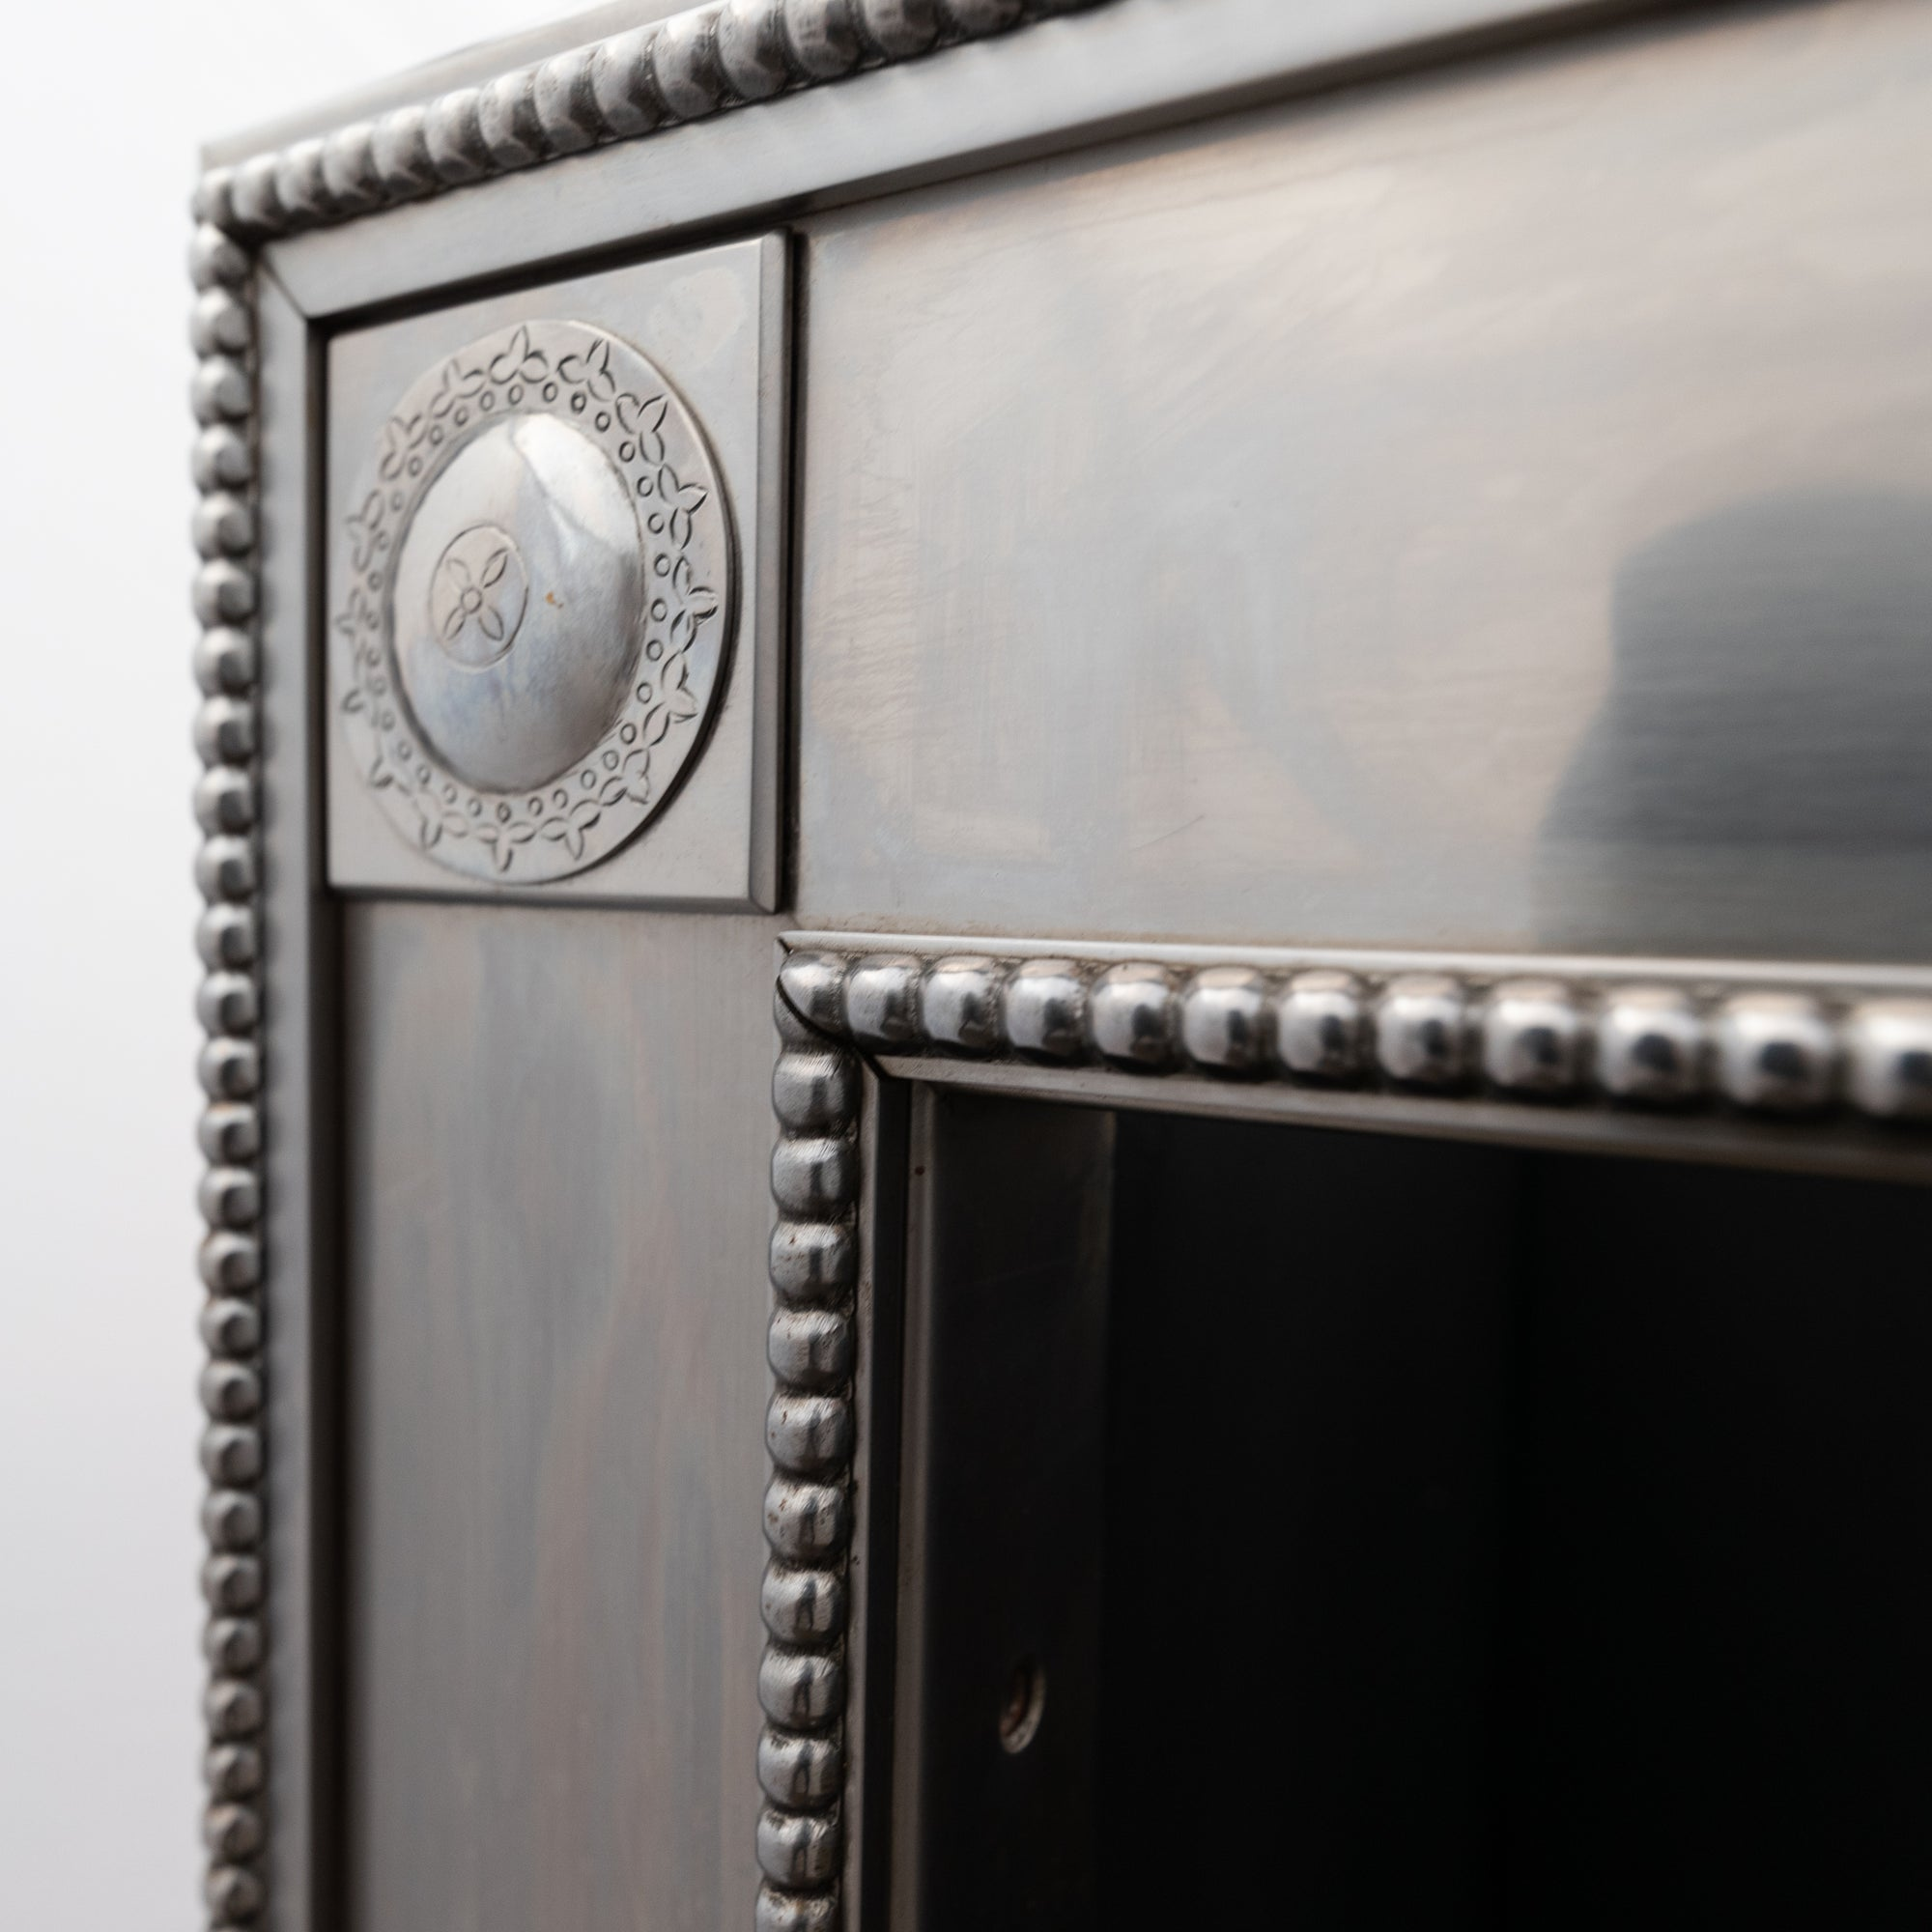 Reclaimed Georgian Style Polished Steel Register Grate in the Manner of Robert Adam | The Architectural Forum